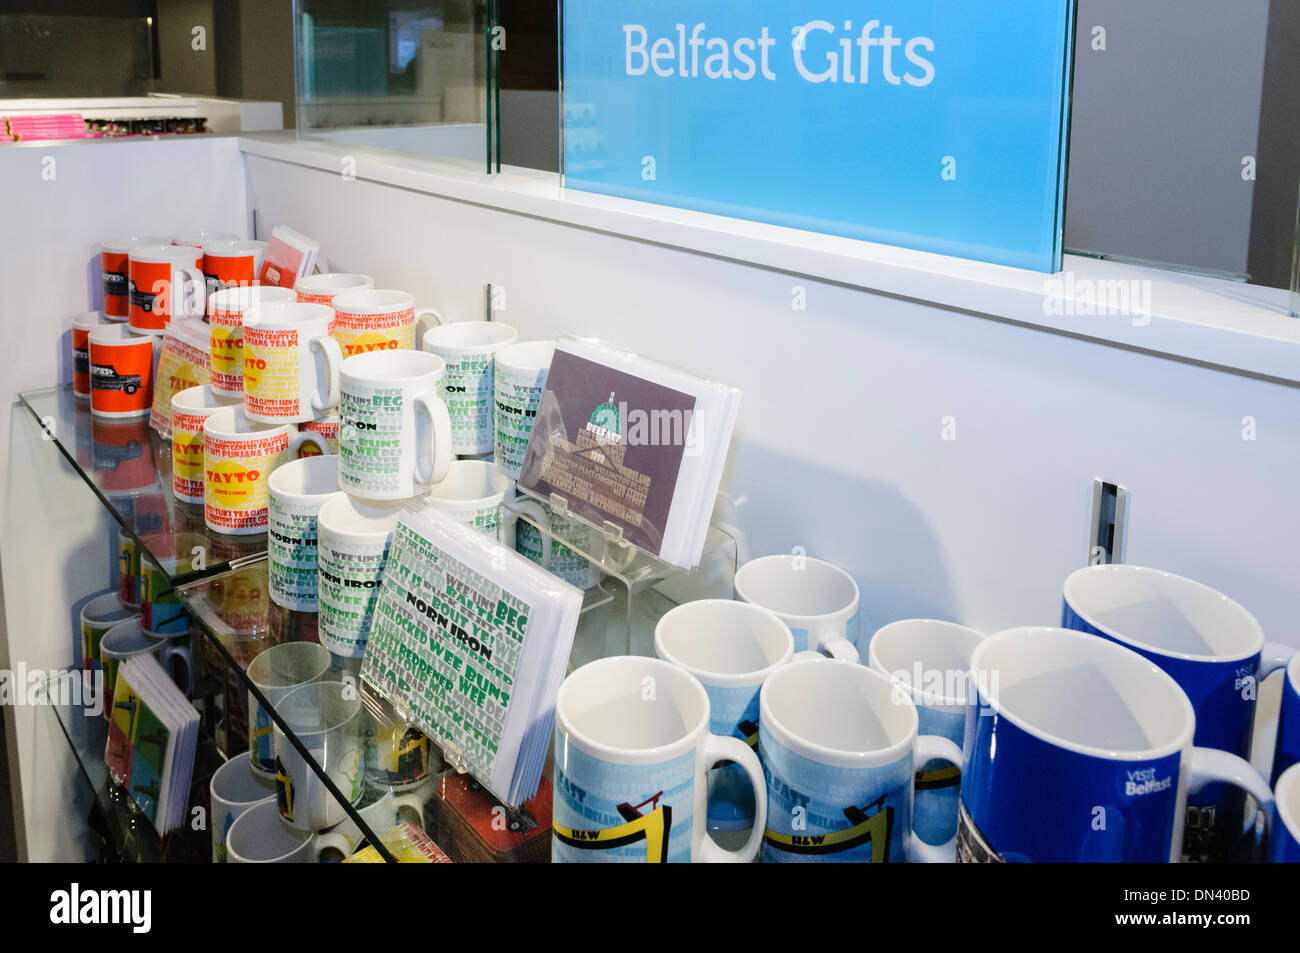 Mugs, coasters, pens and bags branded with 'Belfast' on sale in Visit Belfast tourist information centre - Stock Image